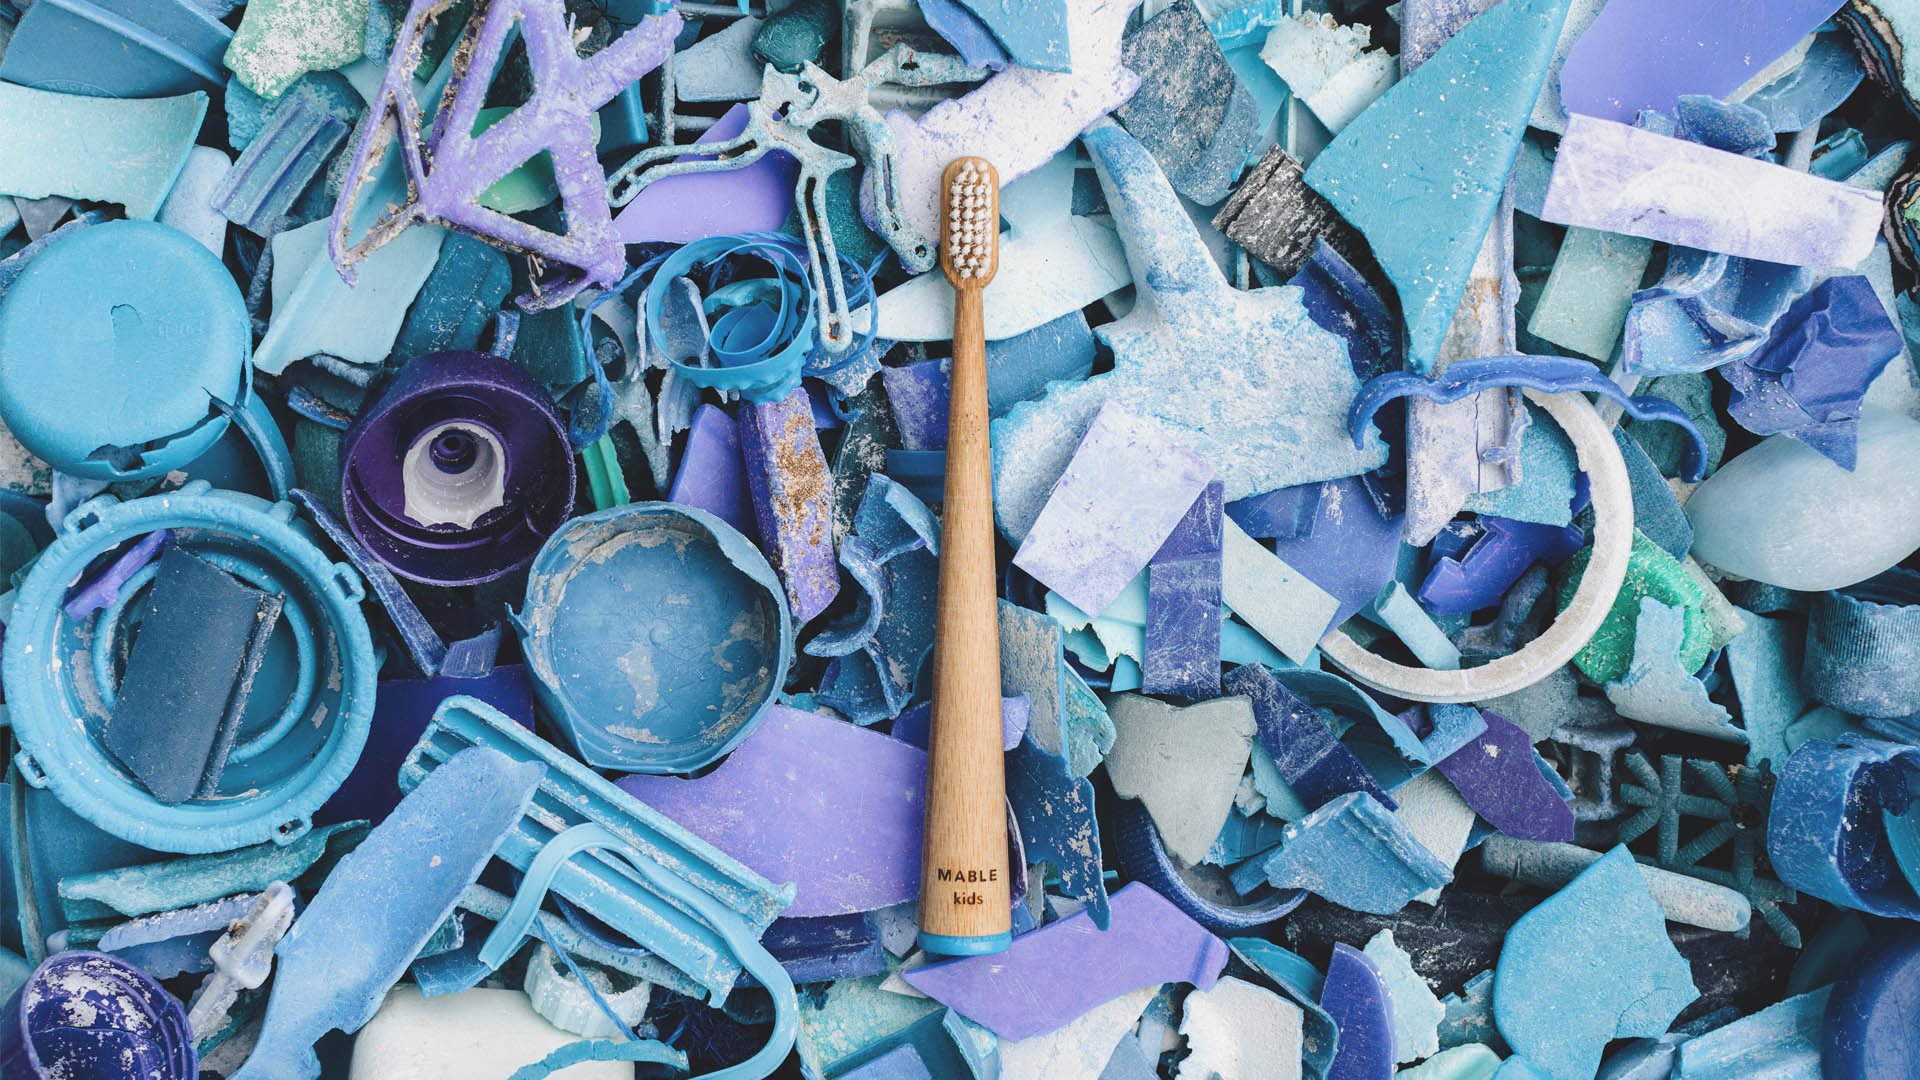 Mable bamboo toothbrush, ocean plastic